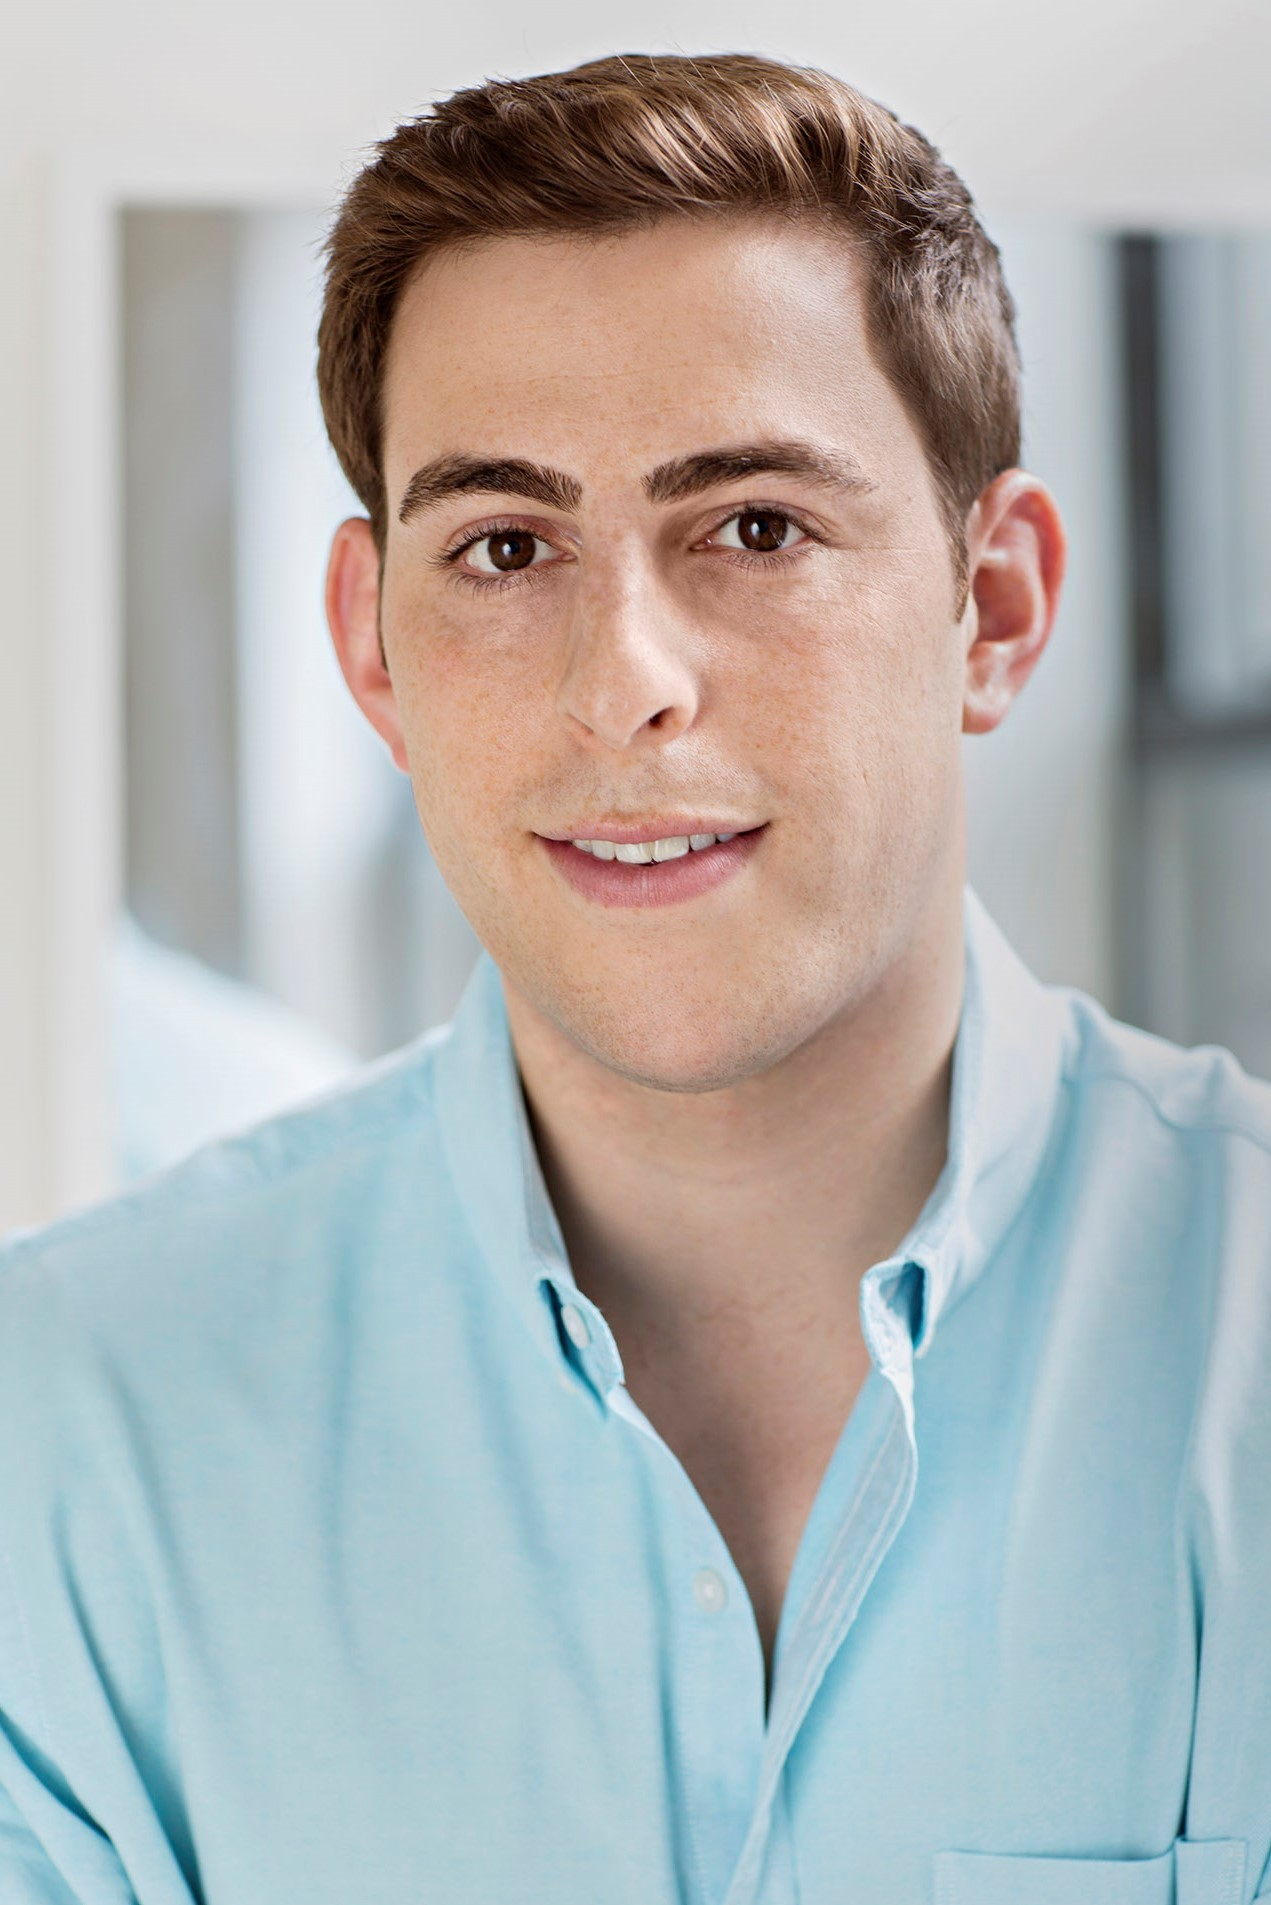 Co-founder of Helix Sleep, Alex Tishman, headshot